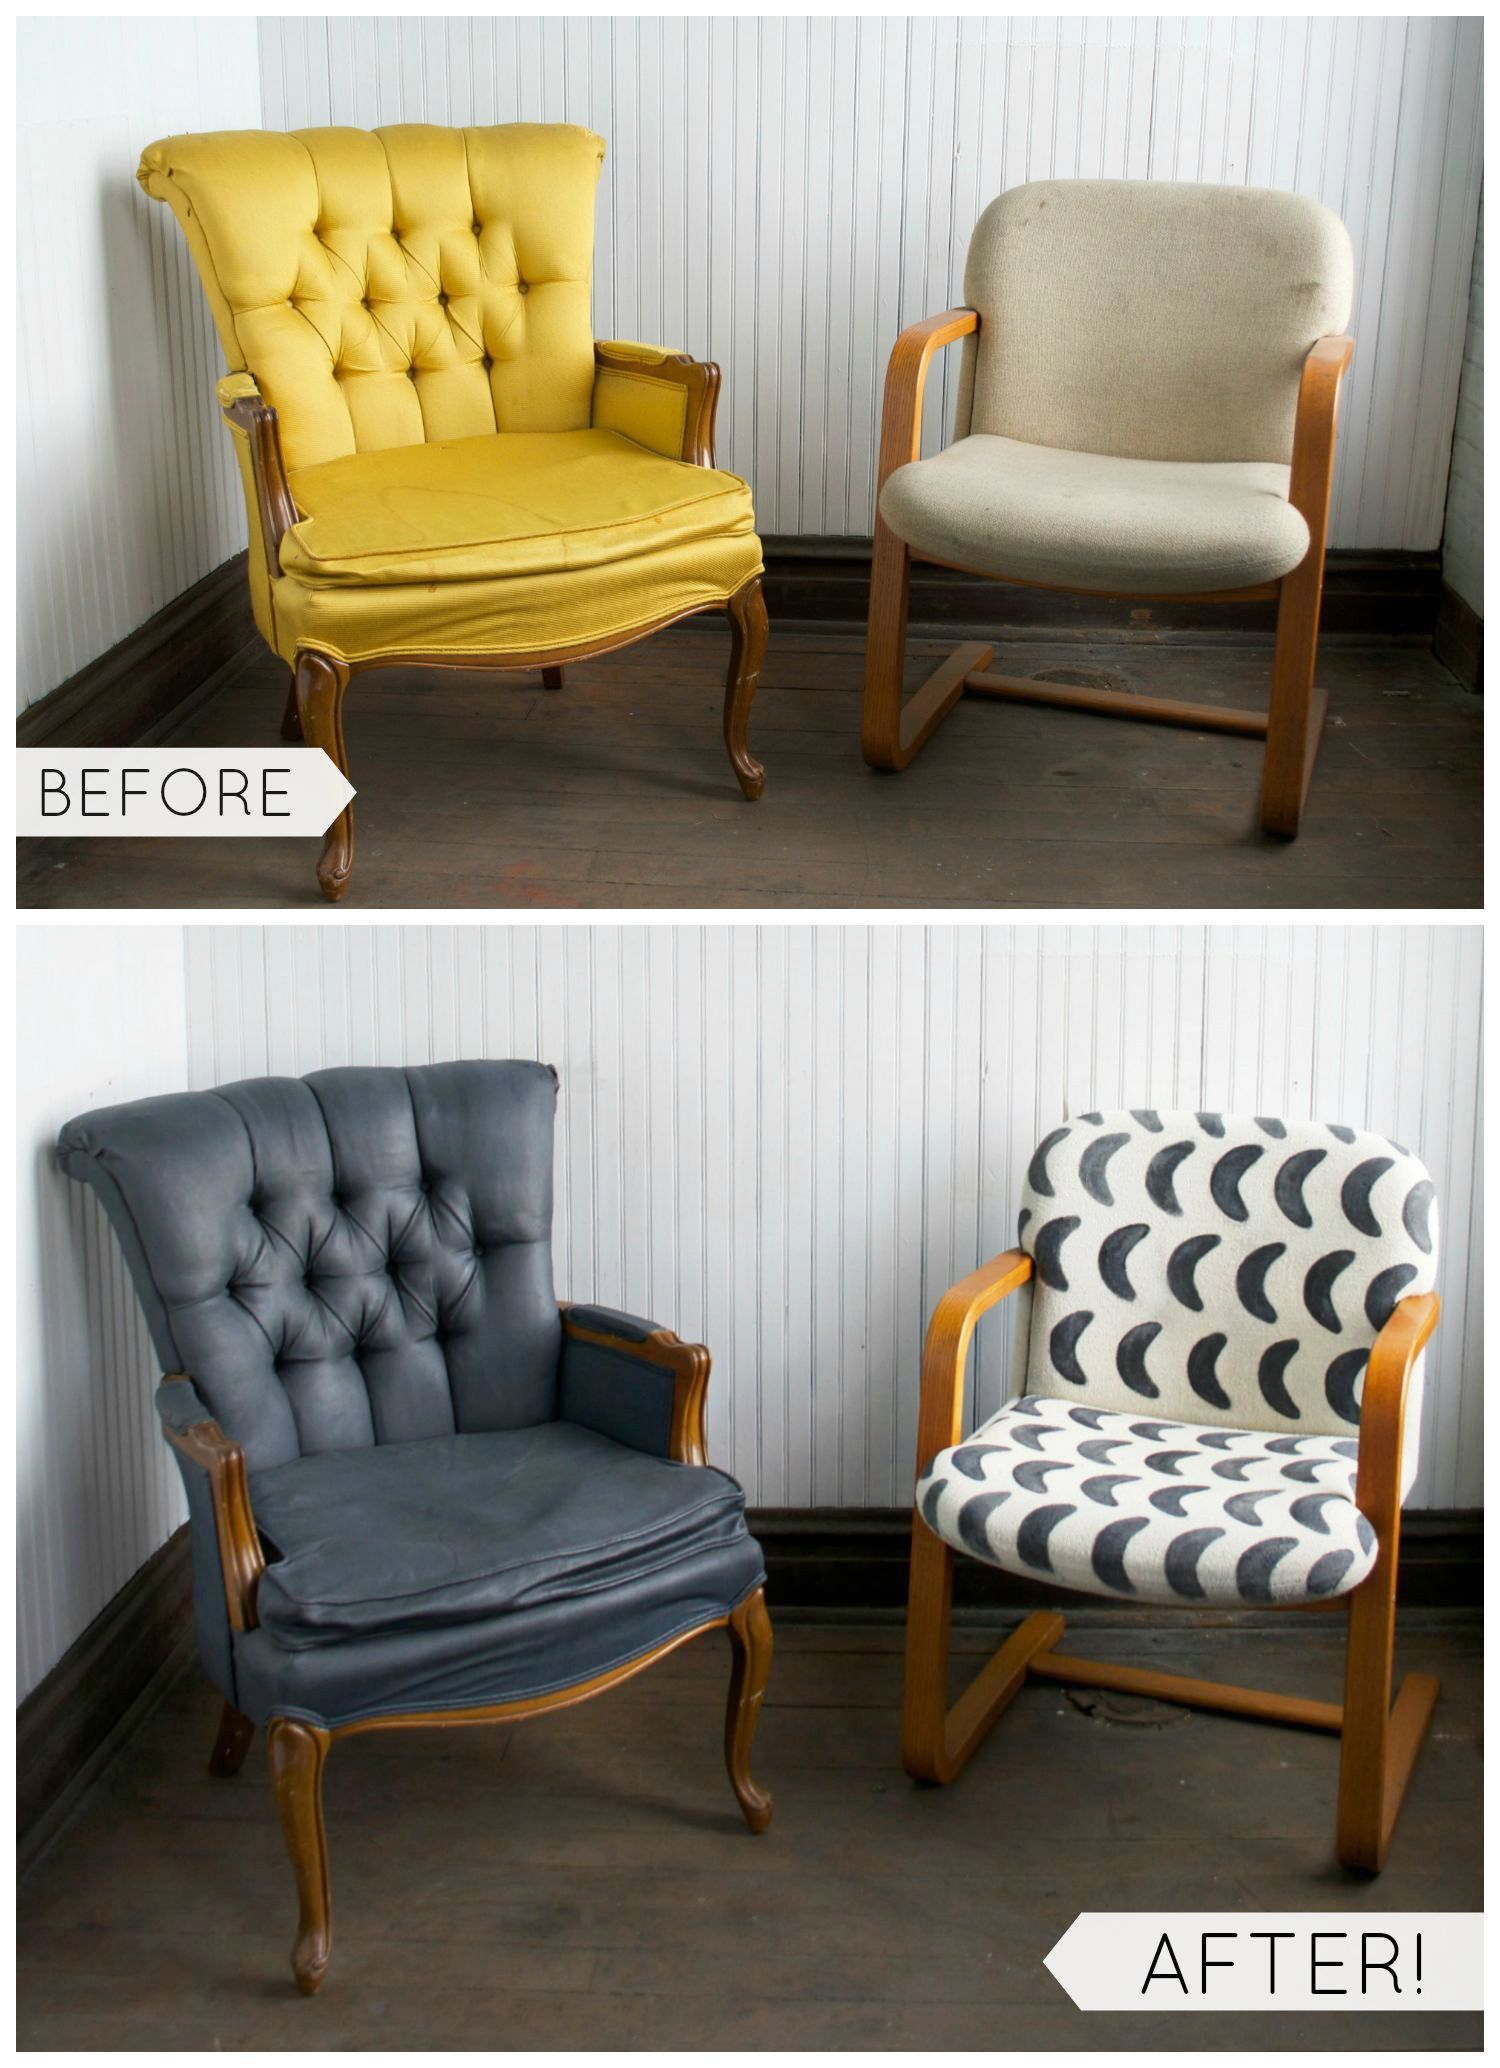 Diy Fabric Chair Makeover With Paint Fabric Chairs Makeover Diy Furniture Easy Furniture Makeover